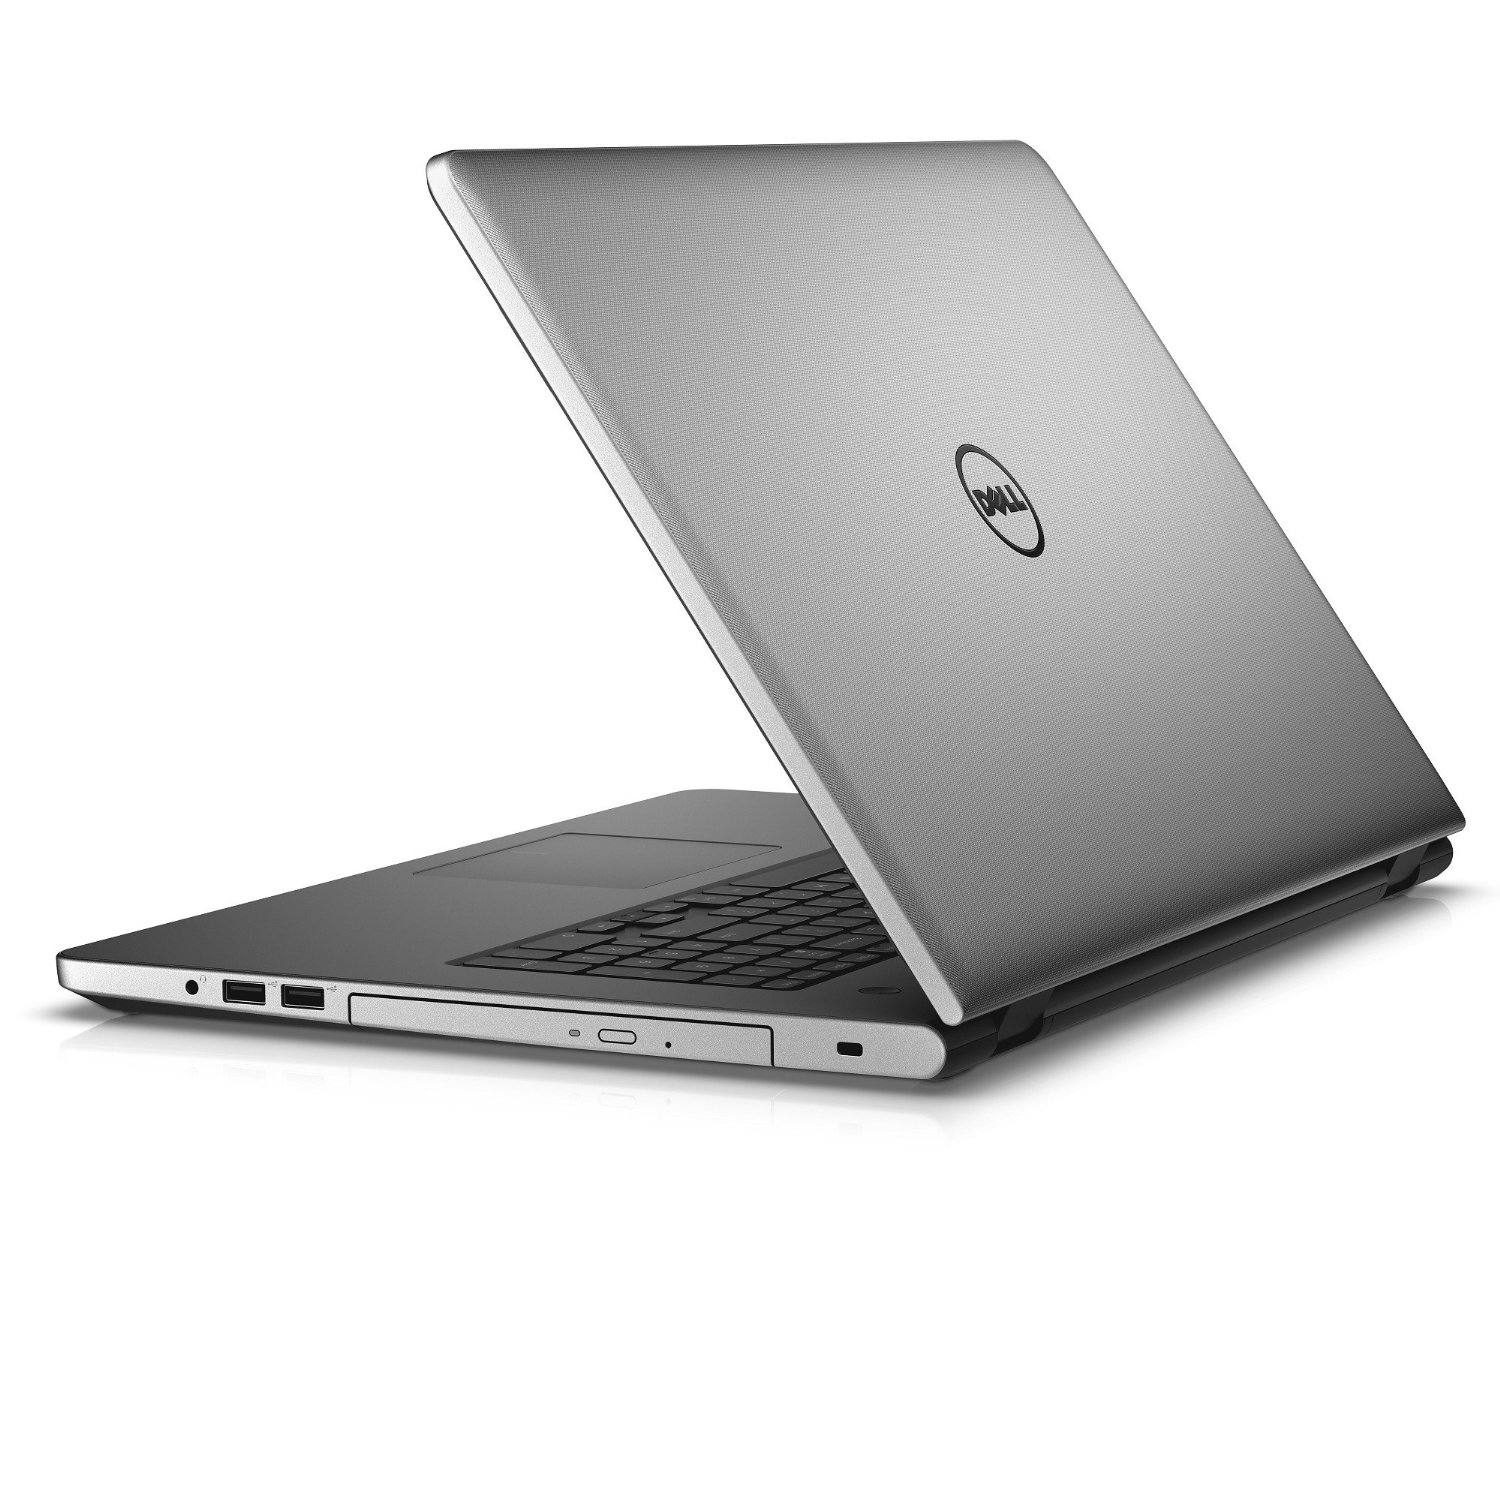 Which dell laptop is best for .....?